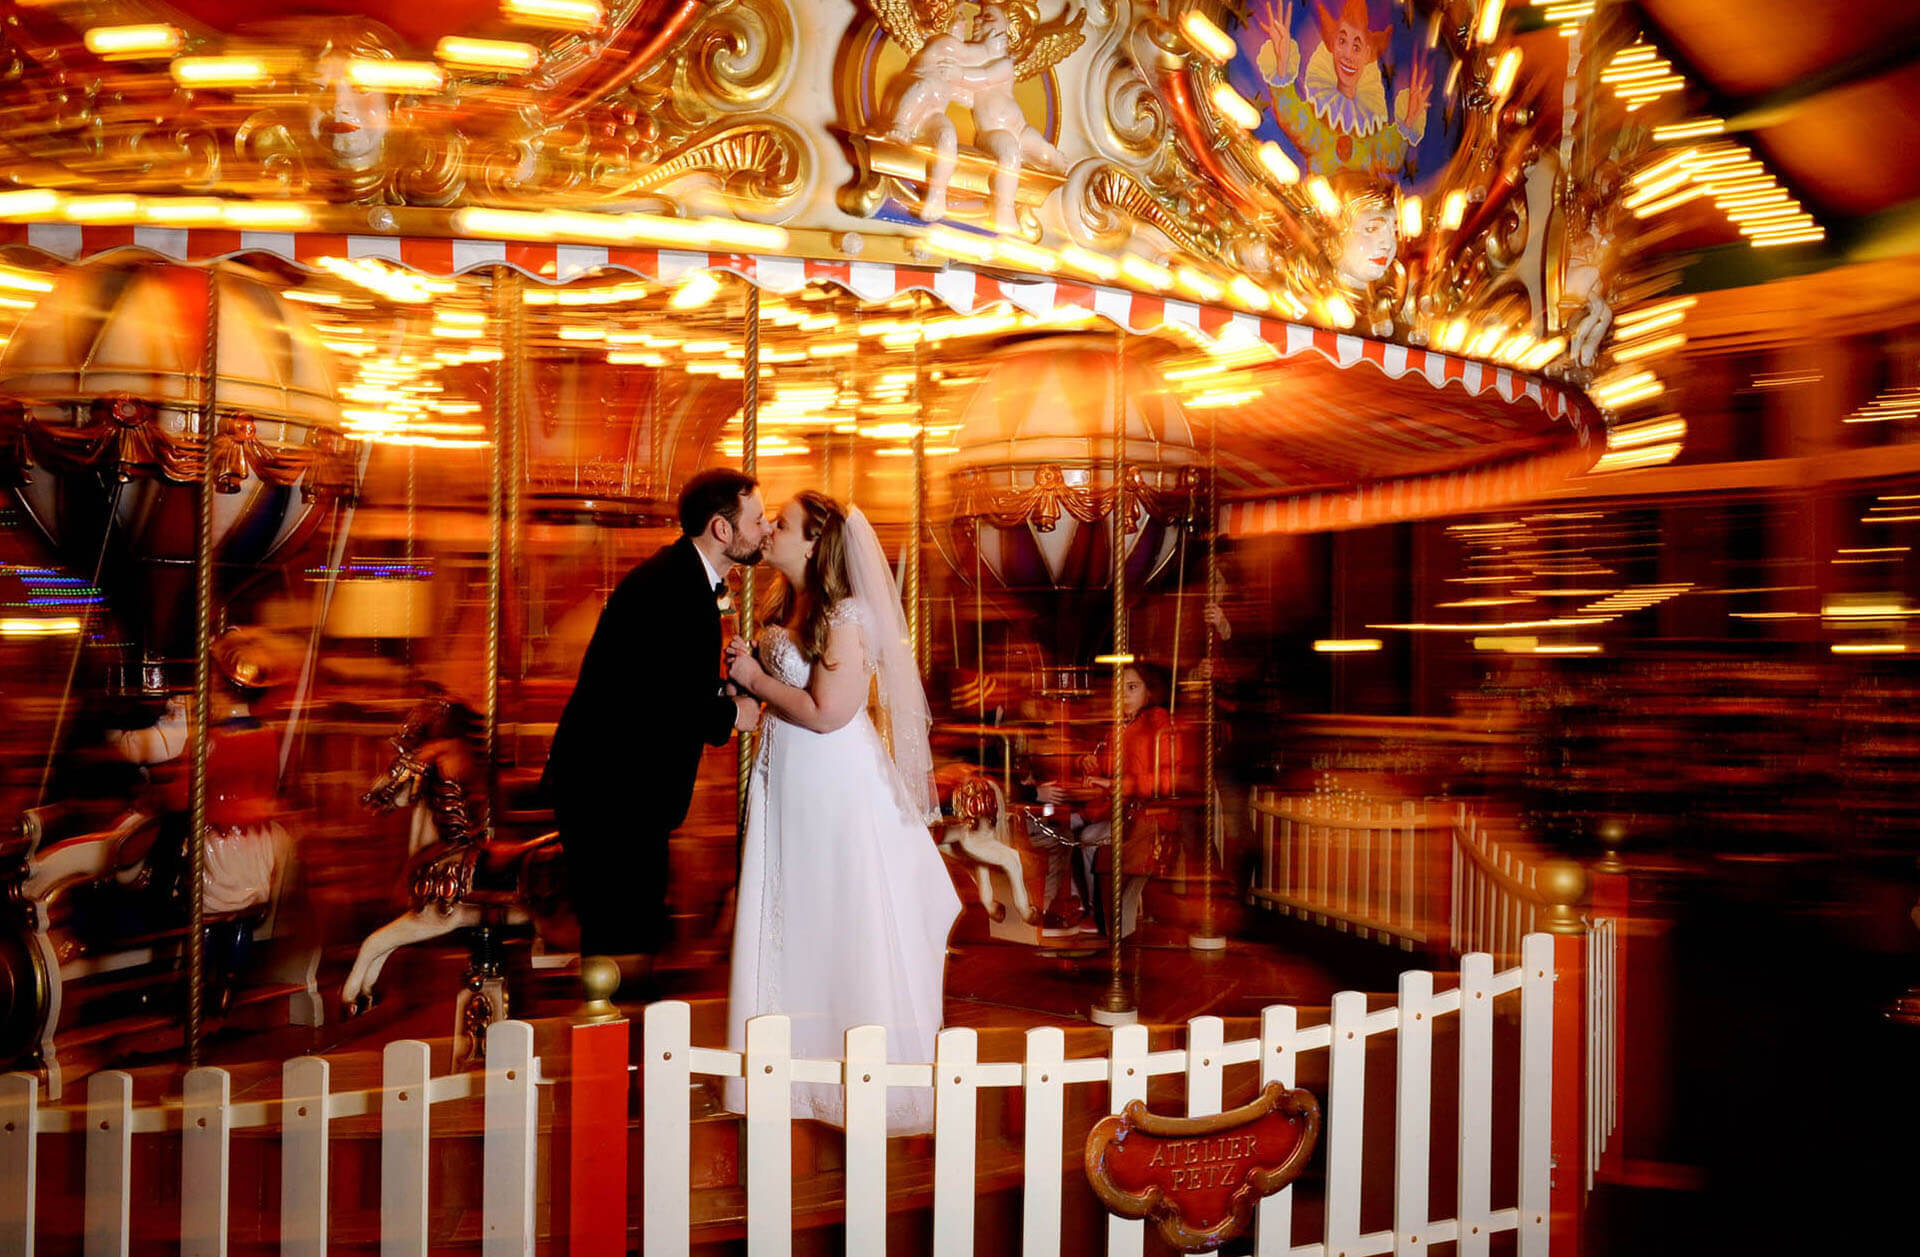 The bride and groom ride the carousel at their Canterbury Village wedding in Lake Orion, Michigan during their Michigan winter wedding.